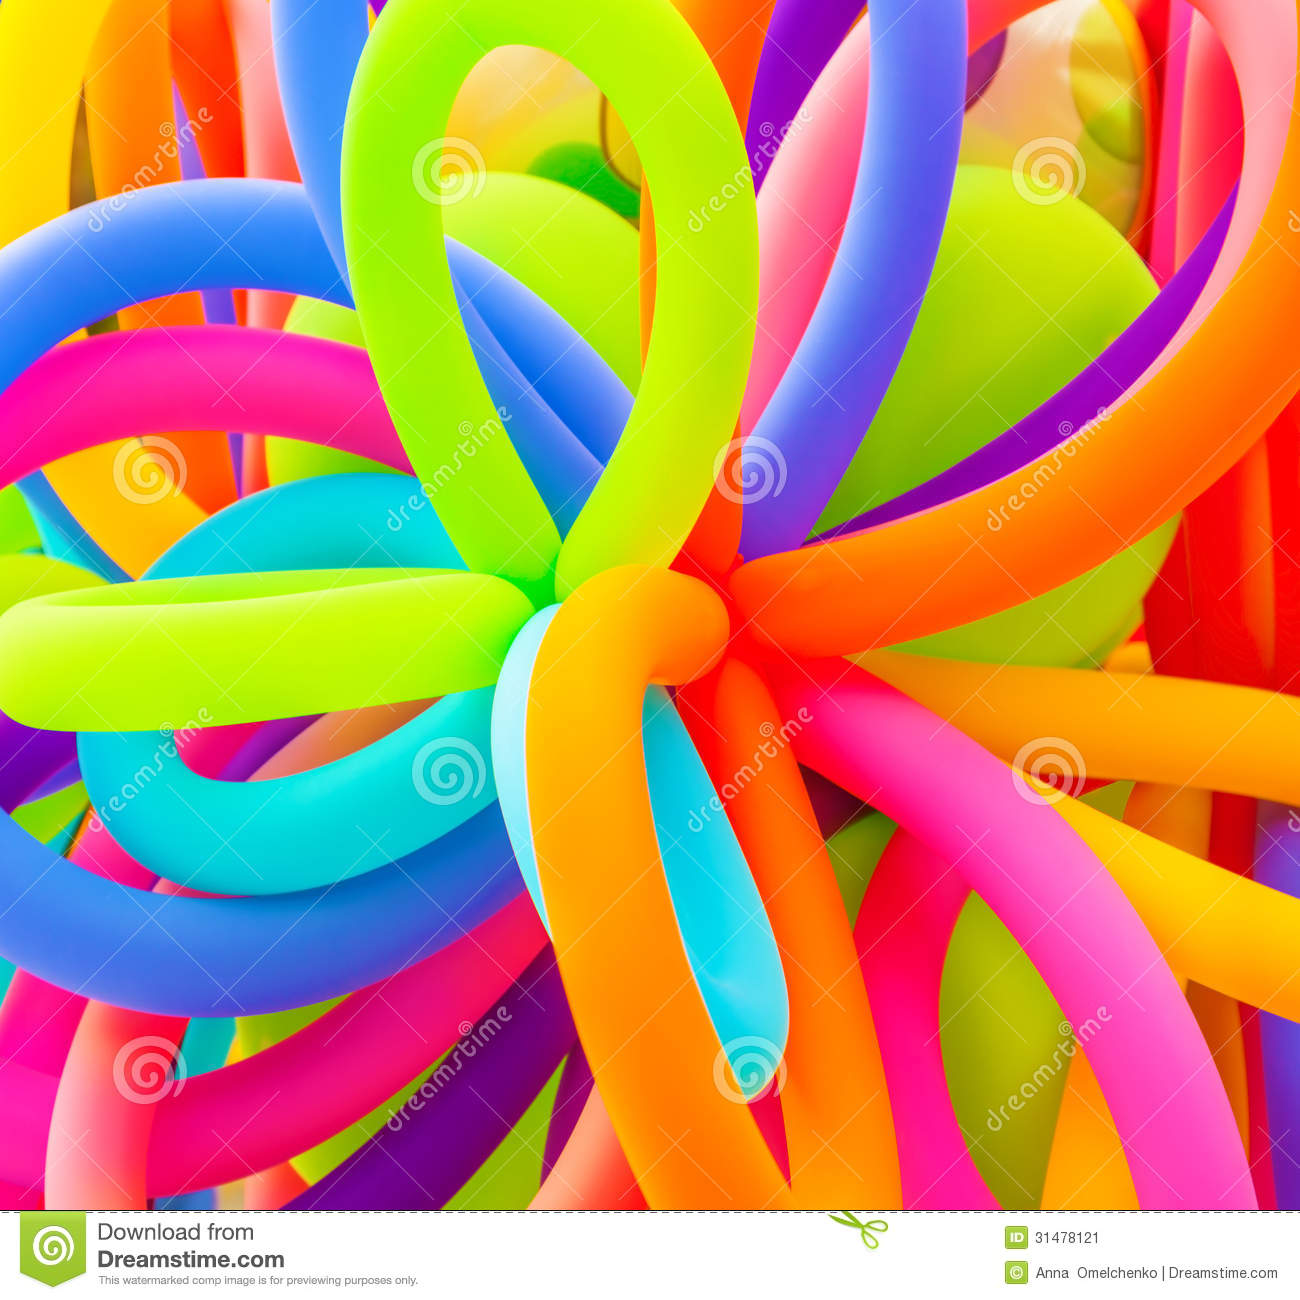 Colorful Balloons Background Stock Image - Image: 31478121